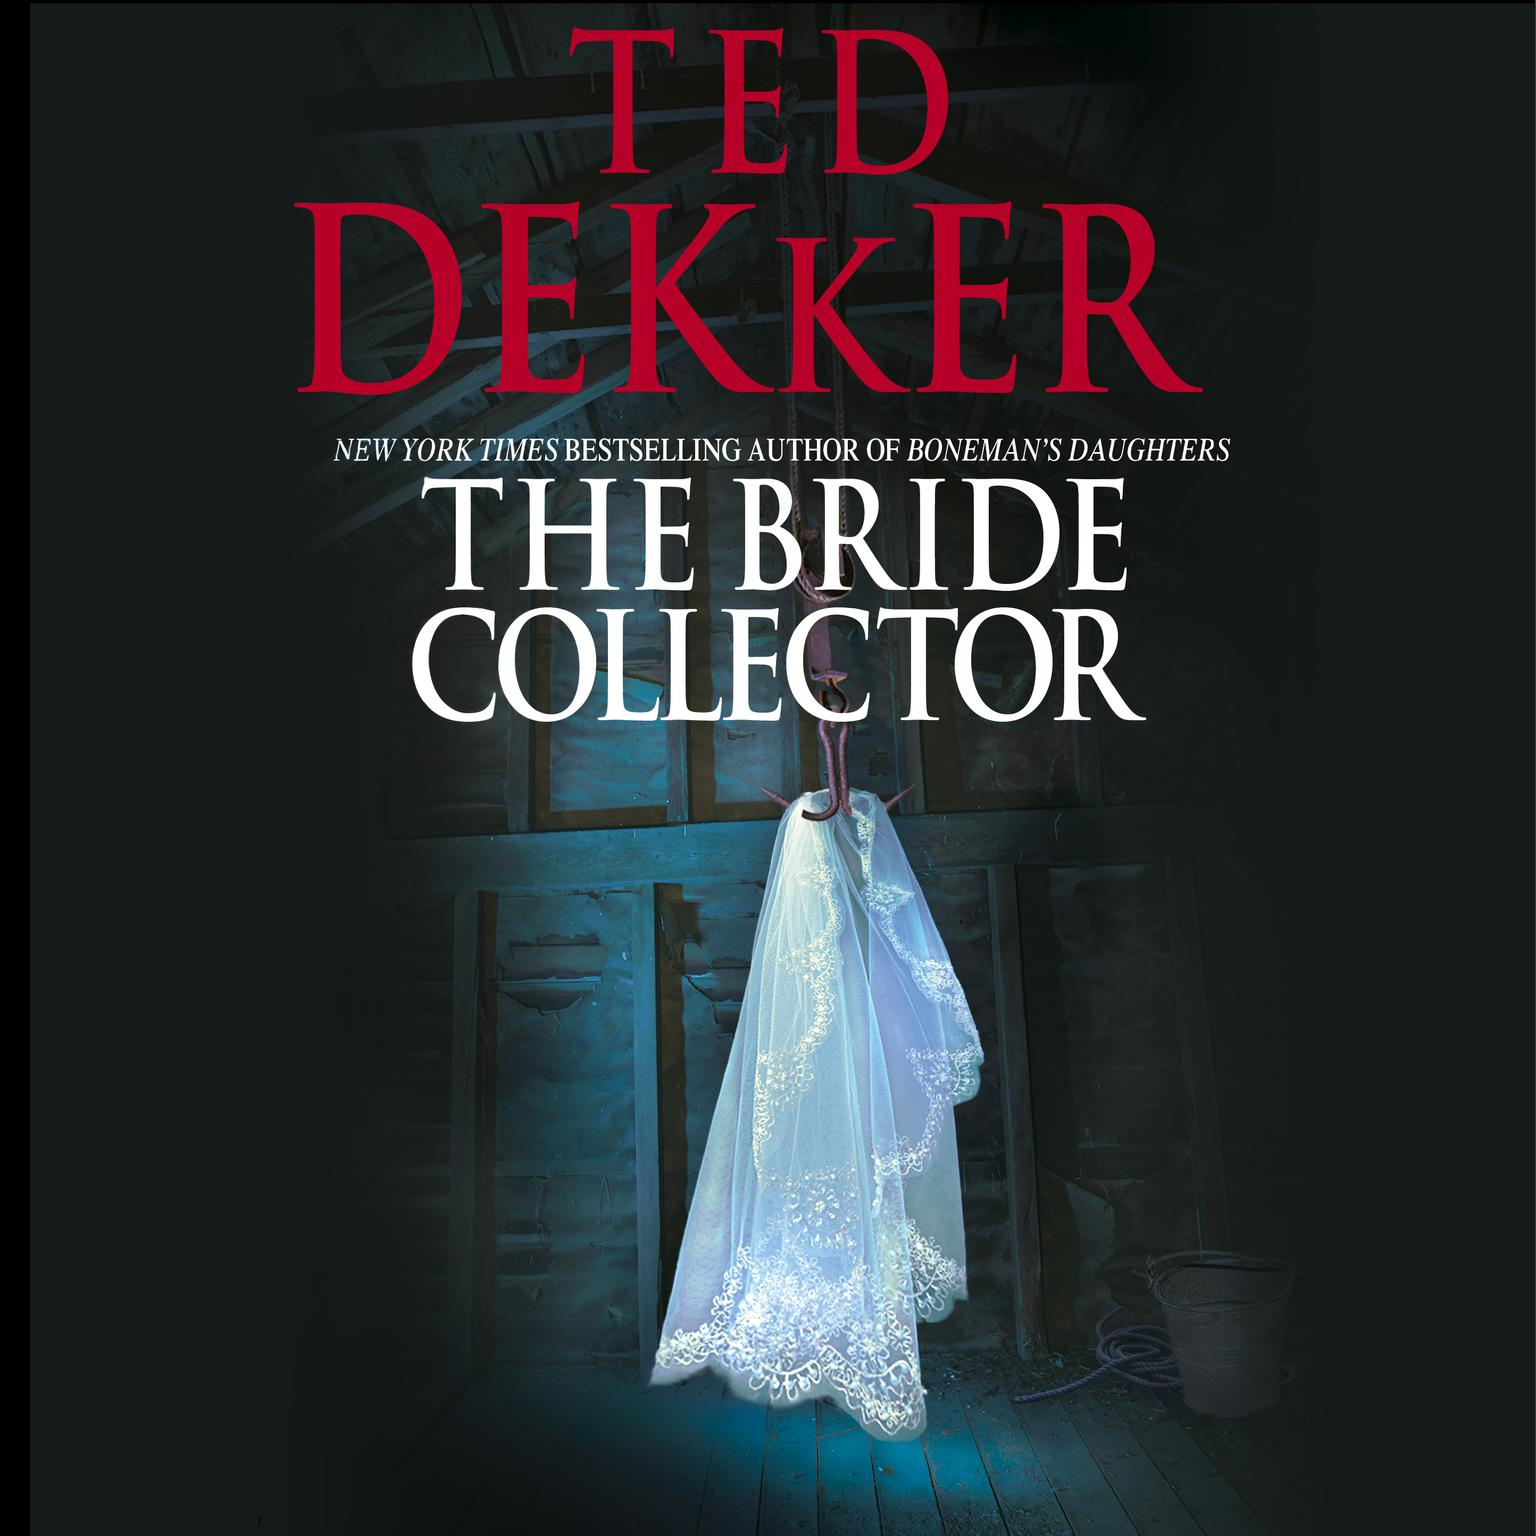 Download The Bride Collector Audiobook By Ted Dekker For